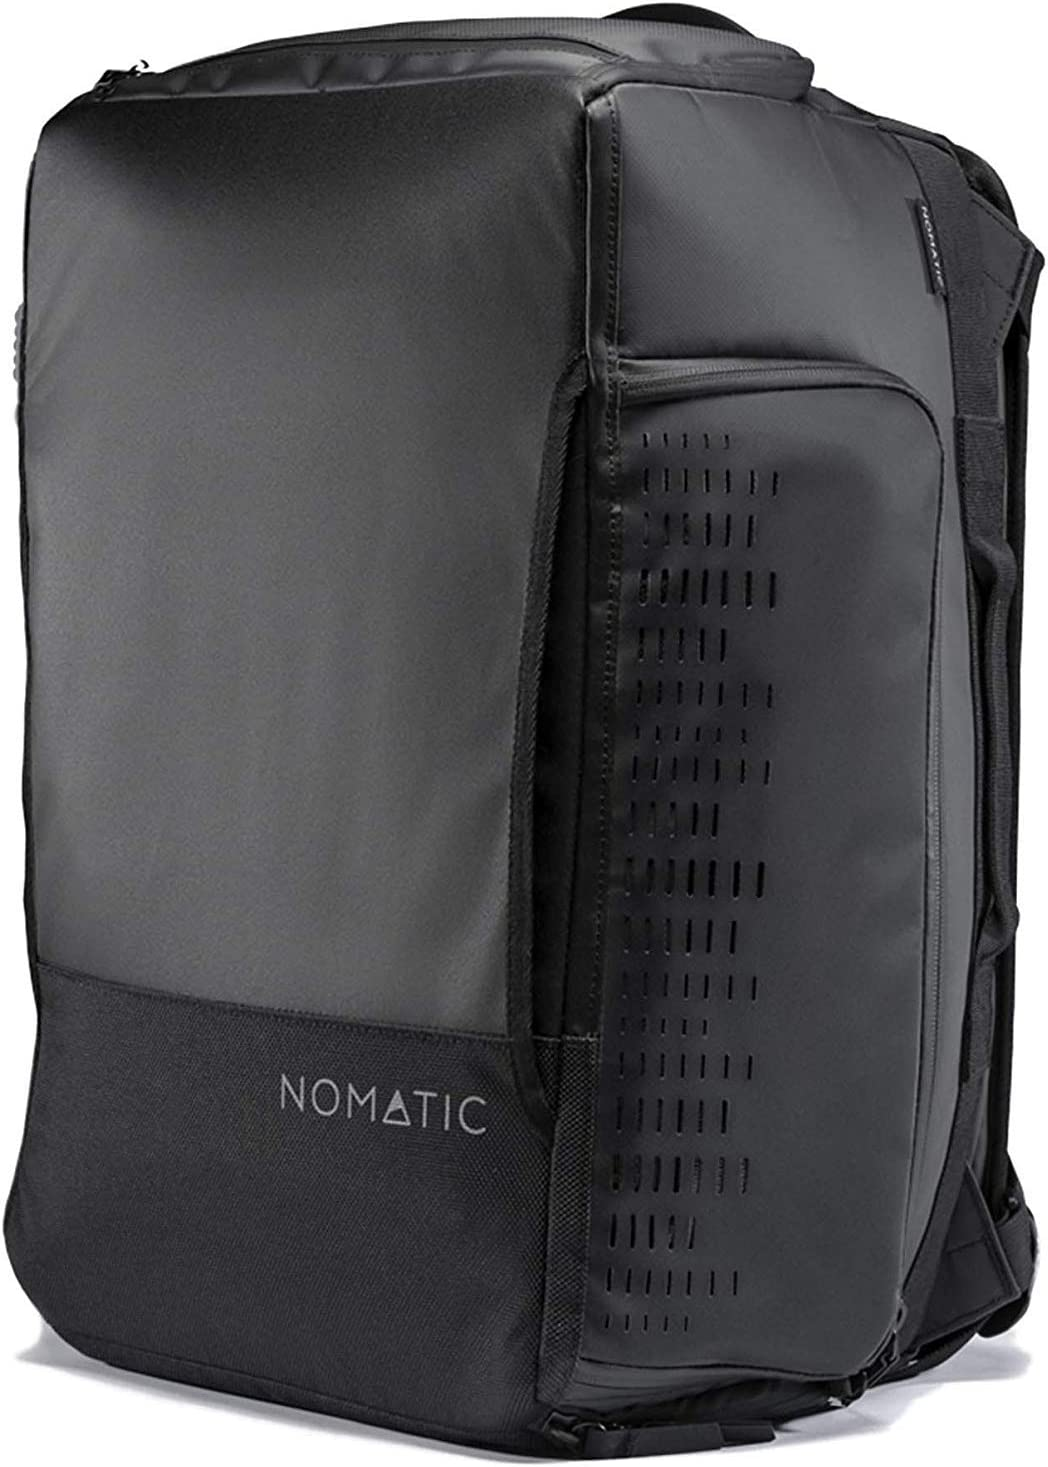 NOMATIC 30L Water-resistant Travel Bag